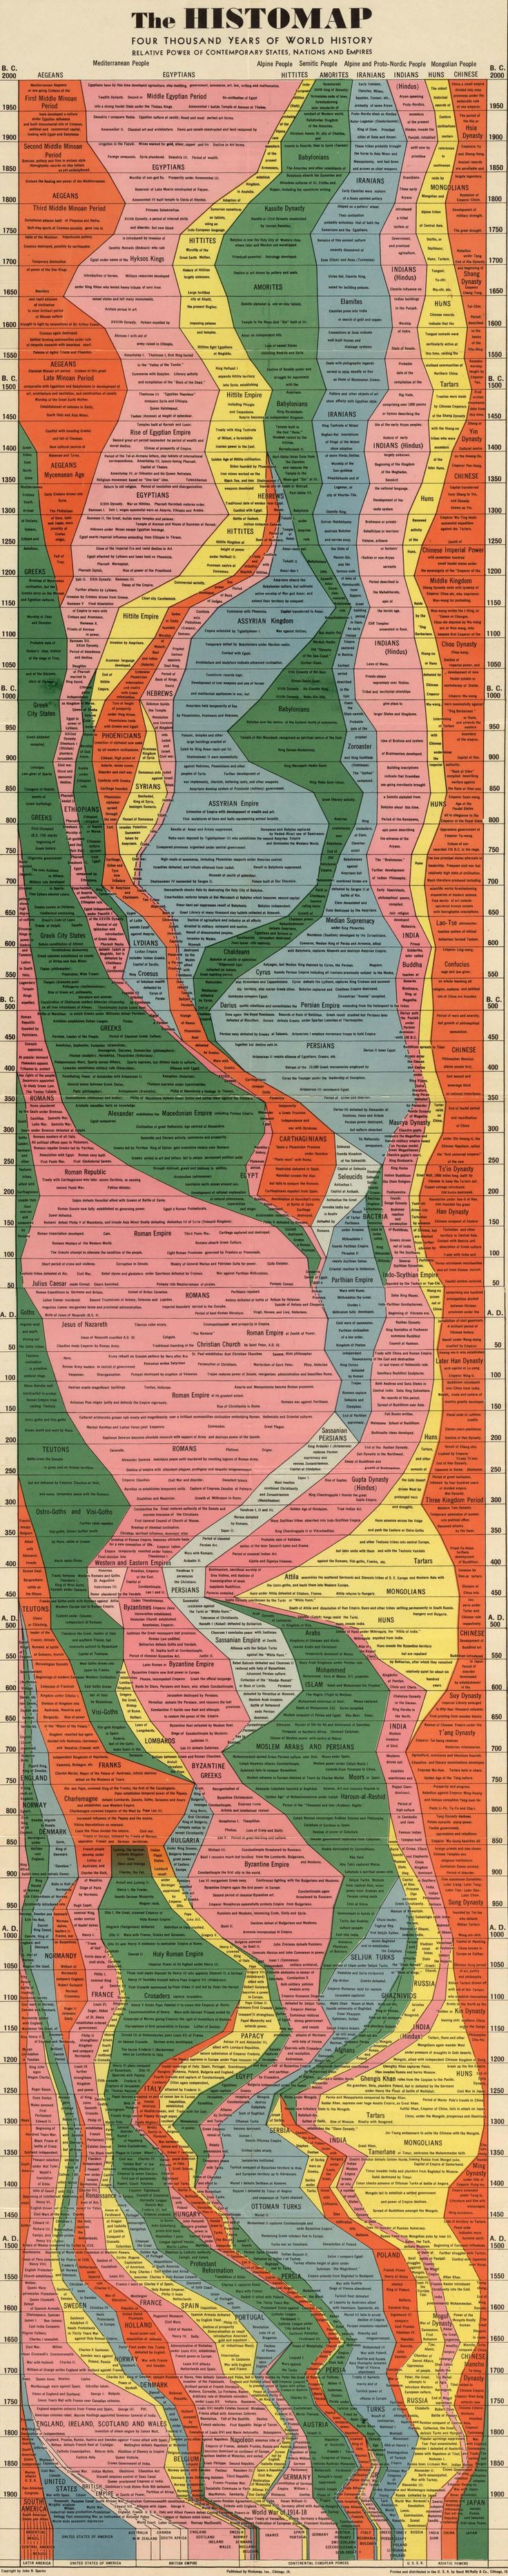 The Histomap - Four Thousand Years of World History by John B. Sparks and Rand McNally and Co.  via hectolima: Here is one you can zoom in on: http://www.davidrumsey.com/luna/servlet/detail/RUMSEY~8~1~200375~3001080:The-Histomap--Four-Thousand-Years-O?sort=Pub_Date%2CPub_Date%2CPub_List_No%2CSeries_No=q:timeline;sort:Pub_Date%2CPub_Date%2CPub_List_No%2CSeries_No;lc:RUMSEY~8~1=107=111 #Infographics #Timeline #World_History #John_B_Sparks #Rand_McNally #David_Rumsey_Map_Collection #hectolima